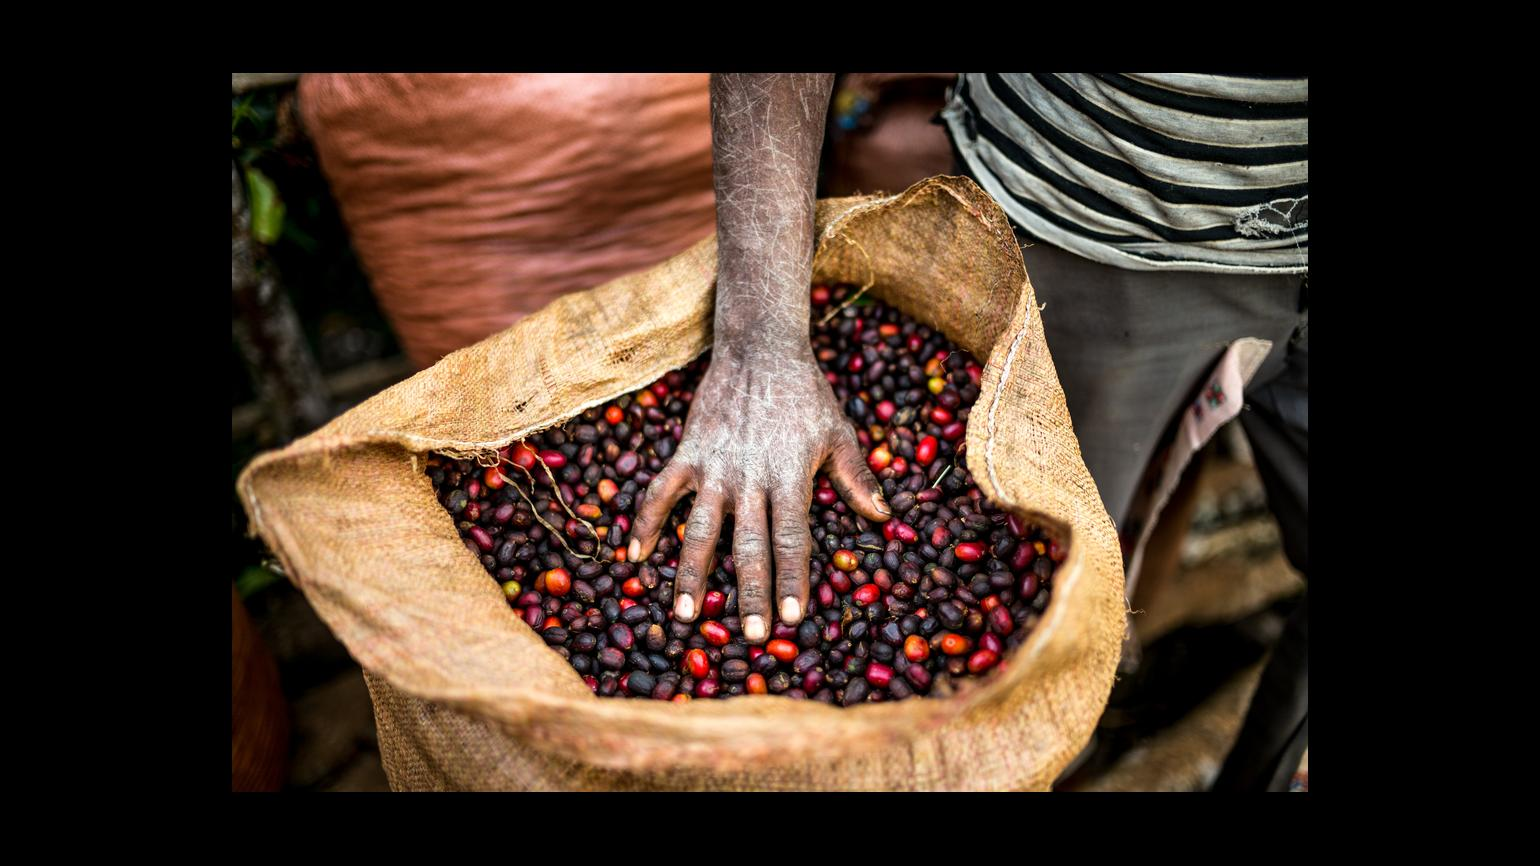 Freshly harvested coffee in Ethiopia in a bag